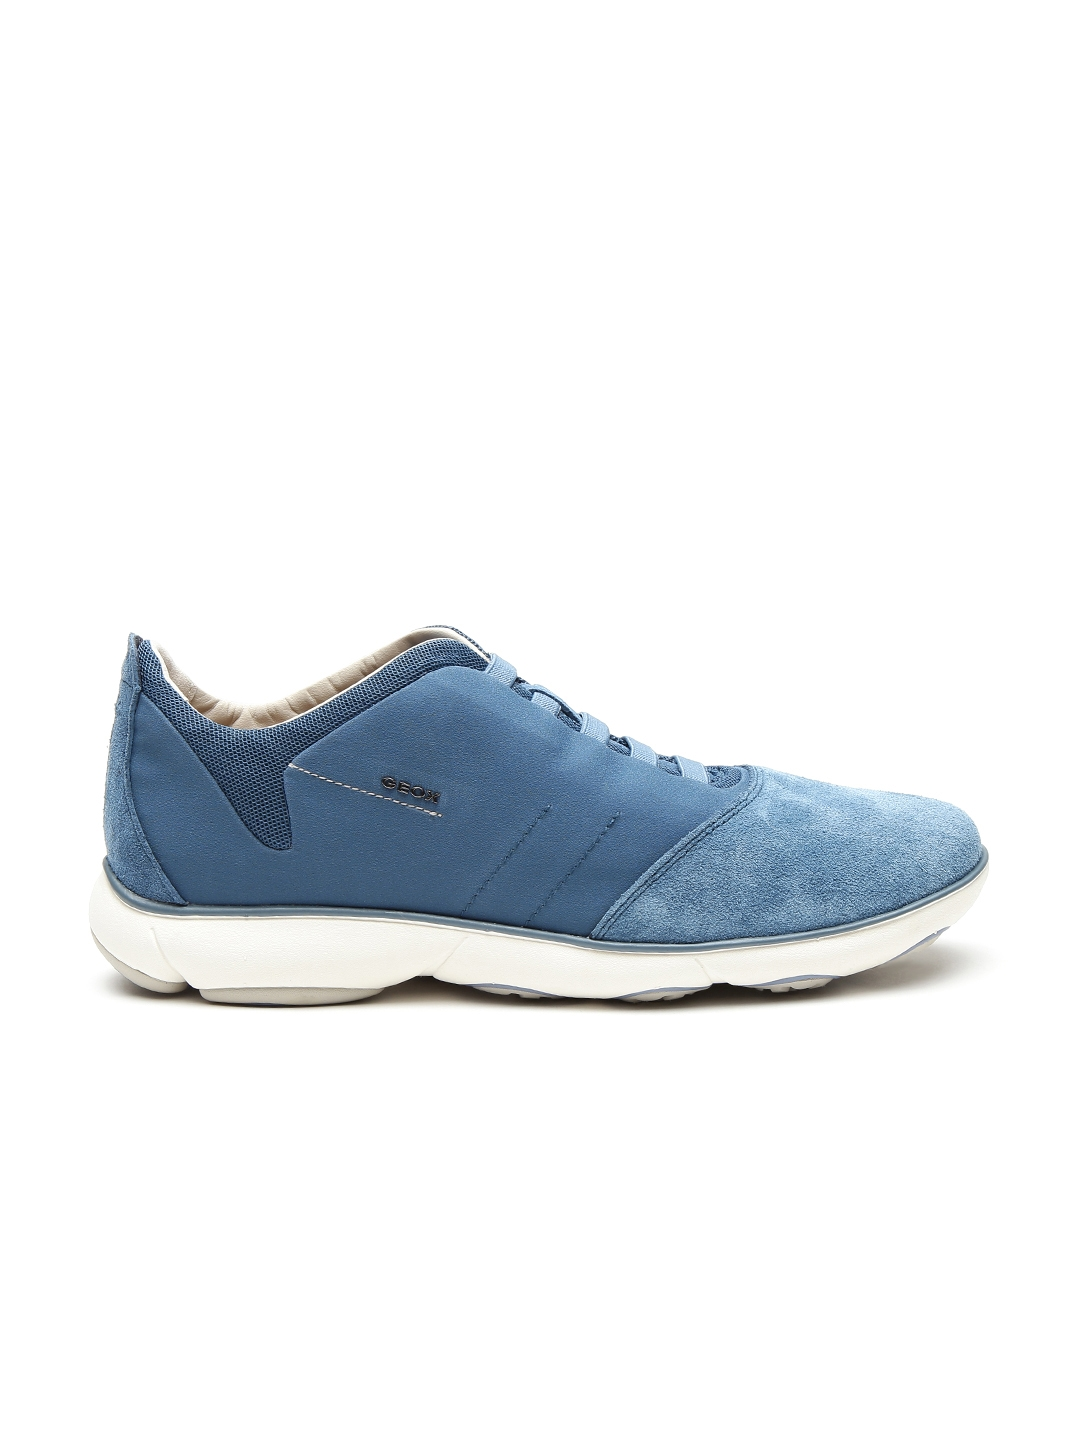 ea340924f9 GEOX Nebula Respira Men Teal Blue Breathable Italian Patent Leather Sneakers